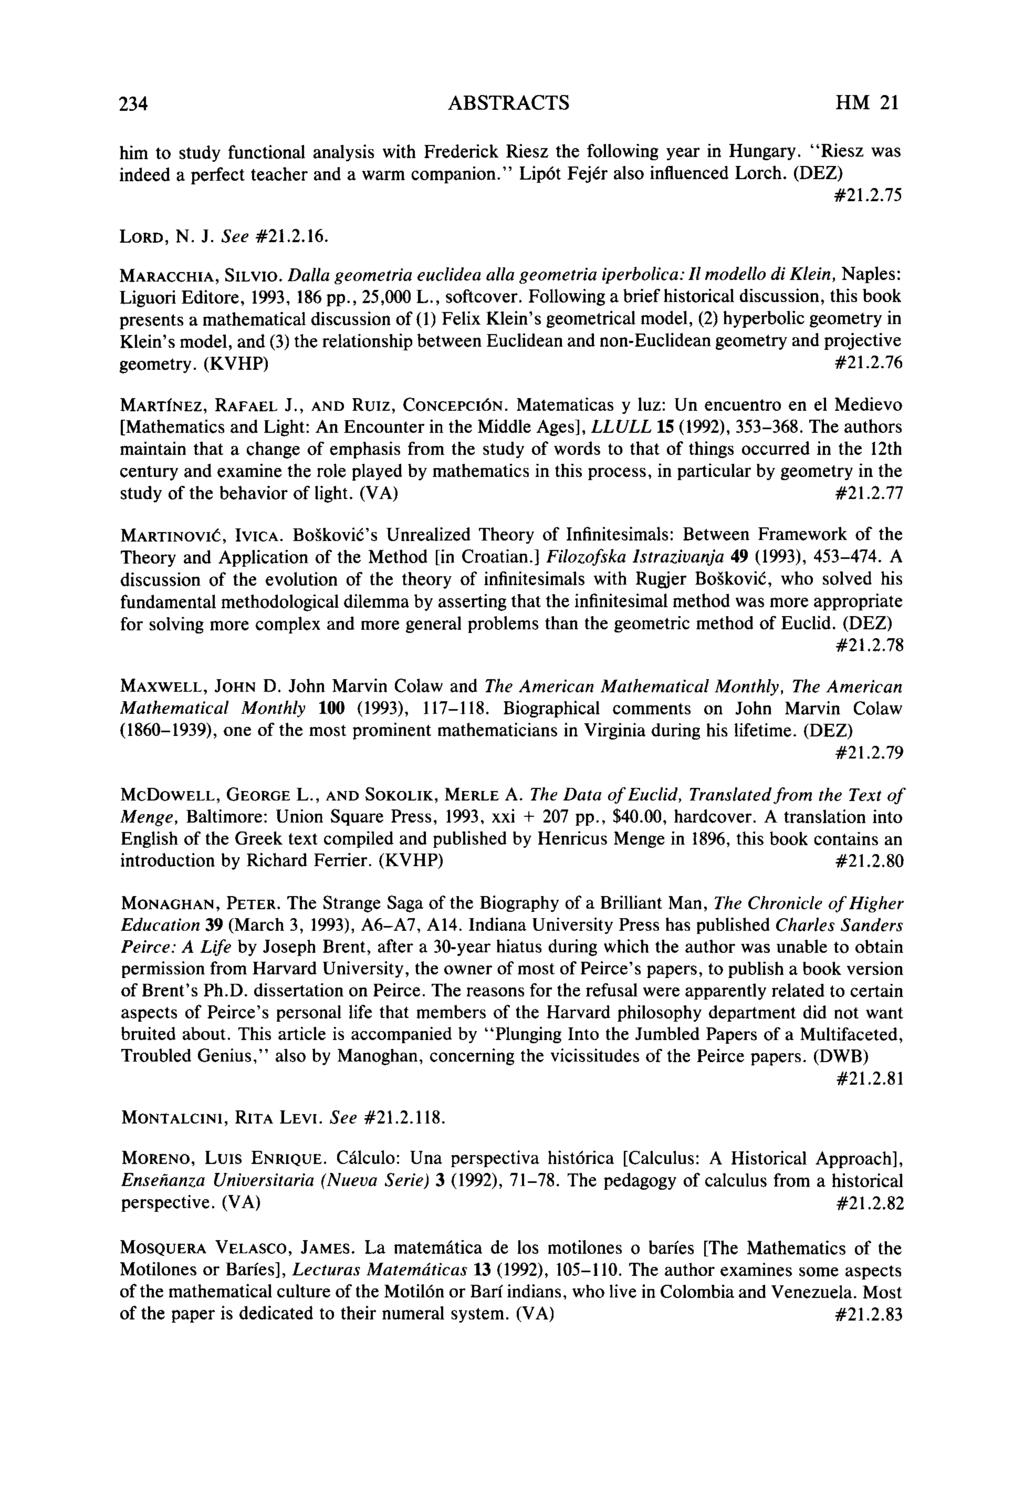 ABSTRACTS HISTORIA MATHEMATICA 21 (1994), Edited by DAVID E